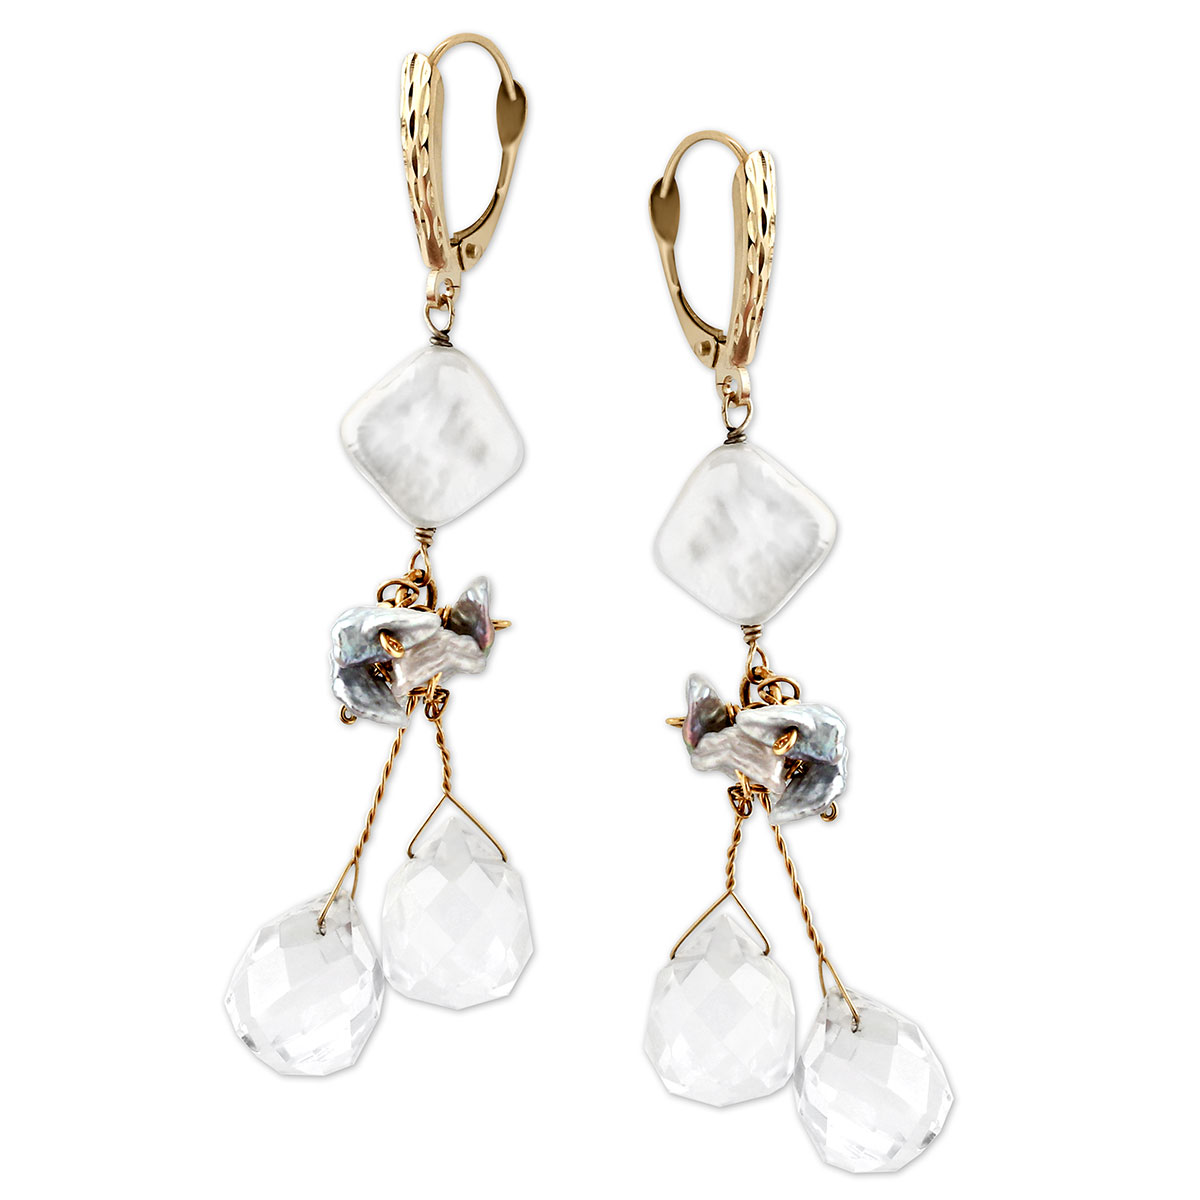 212489-White Topaz & Keishi Pearl Earrings